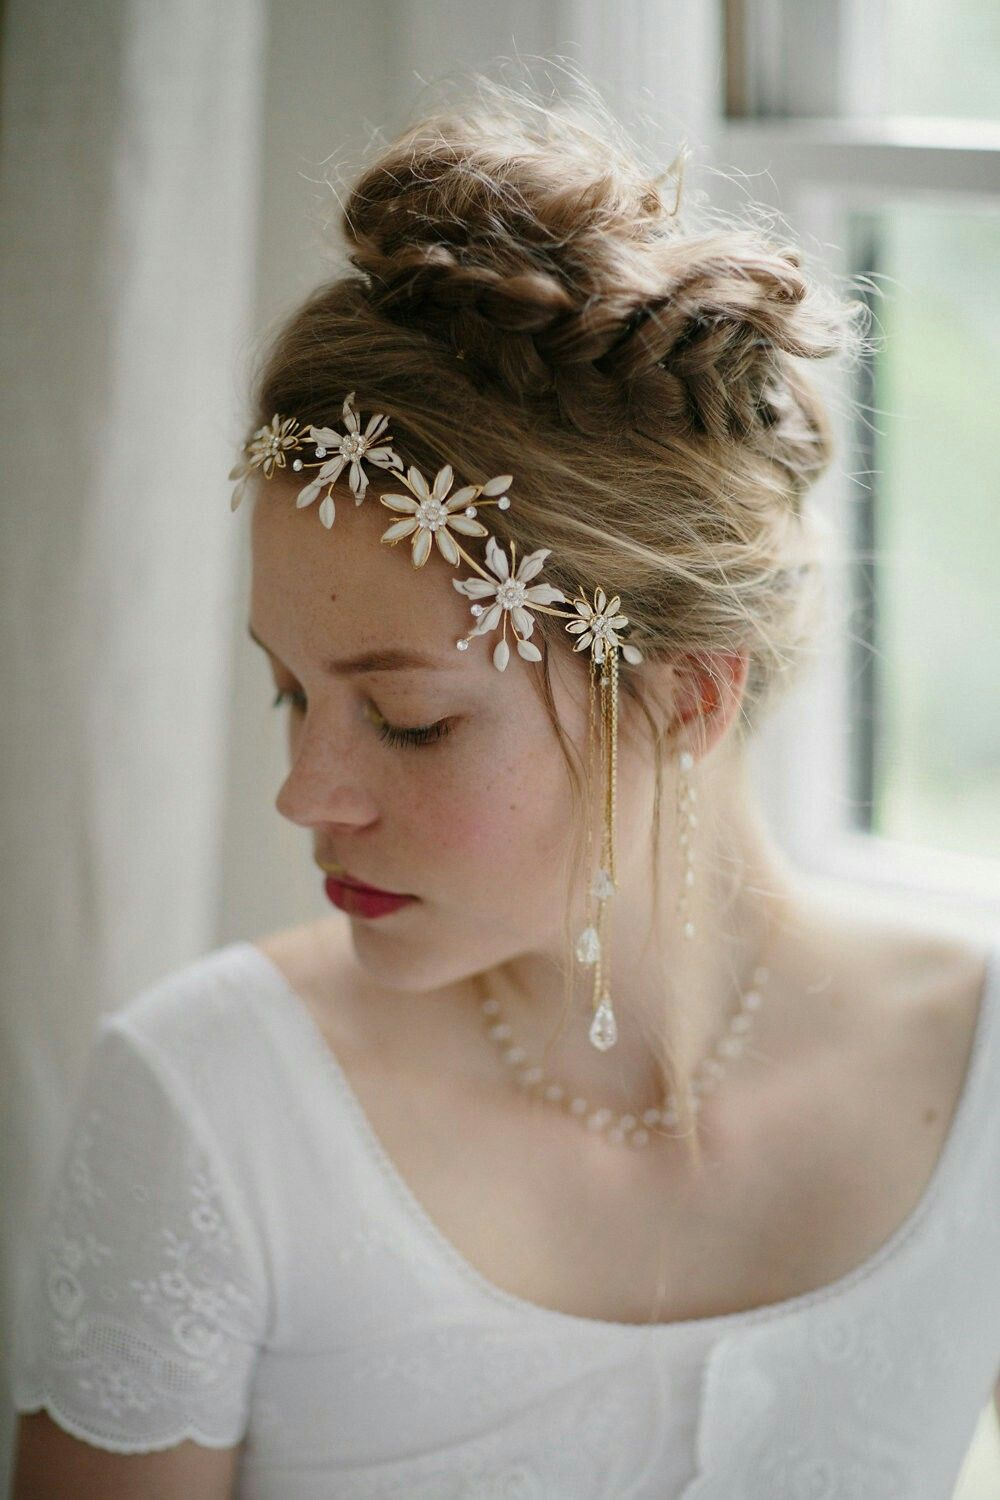 treasure hunt decorative hair pieces by erica elizabeth designs